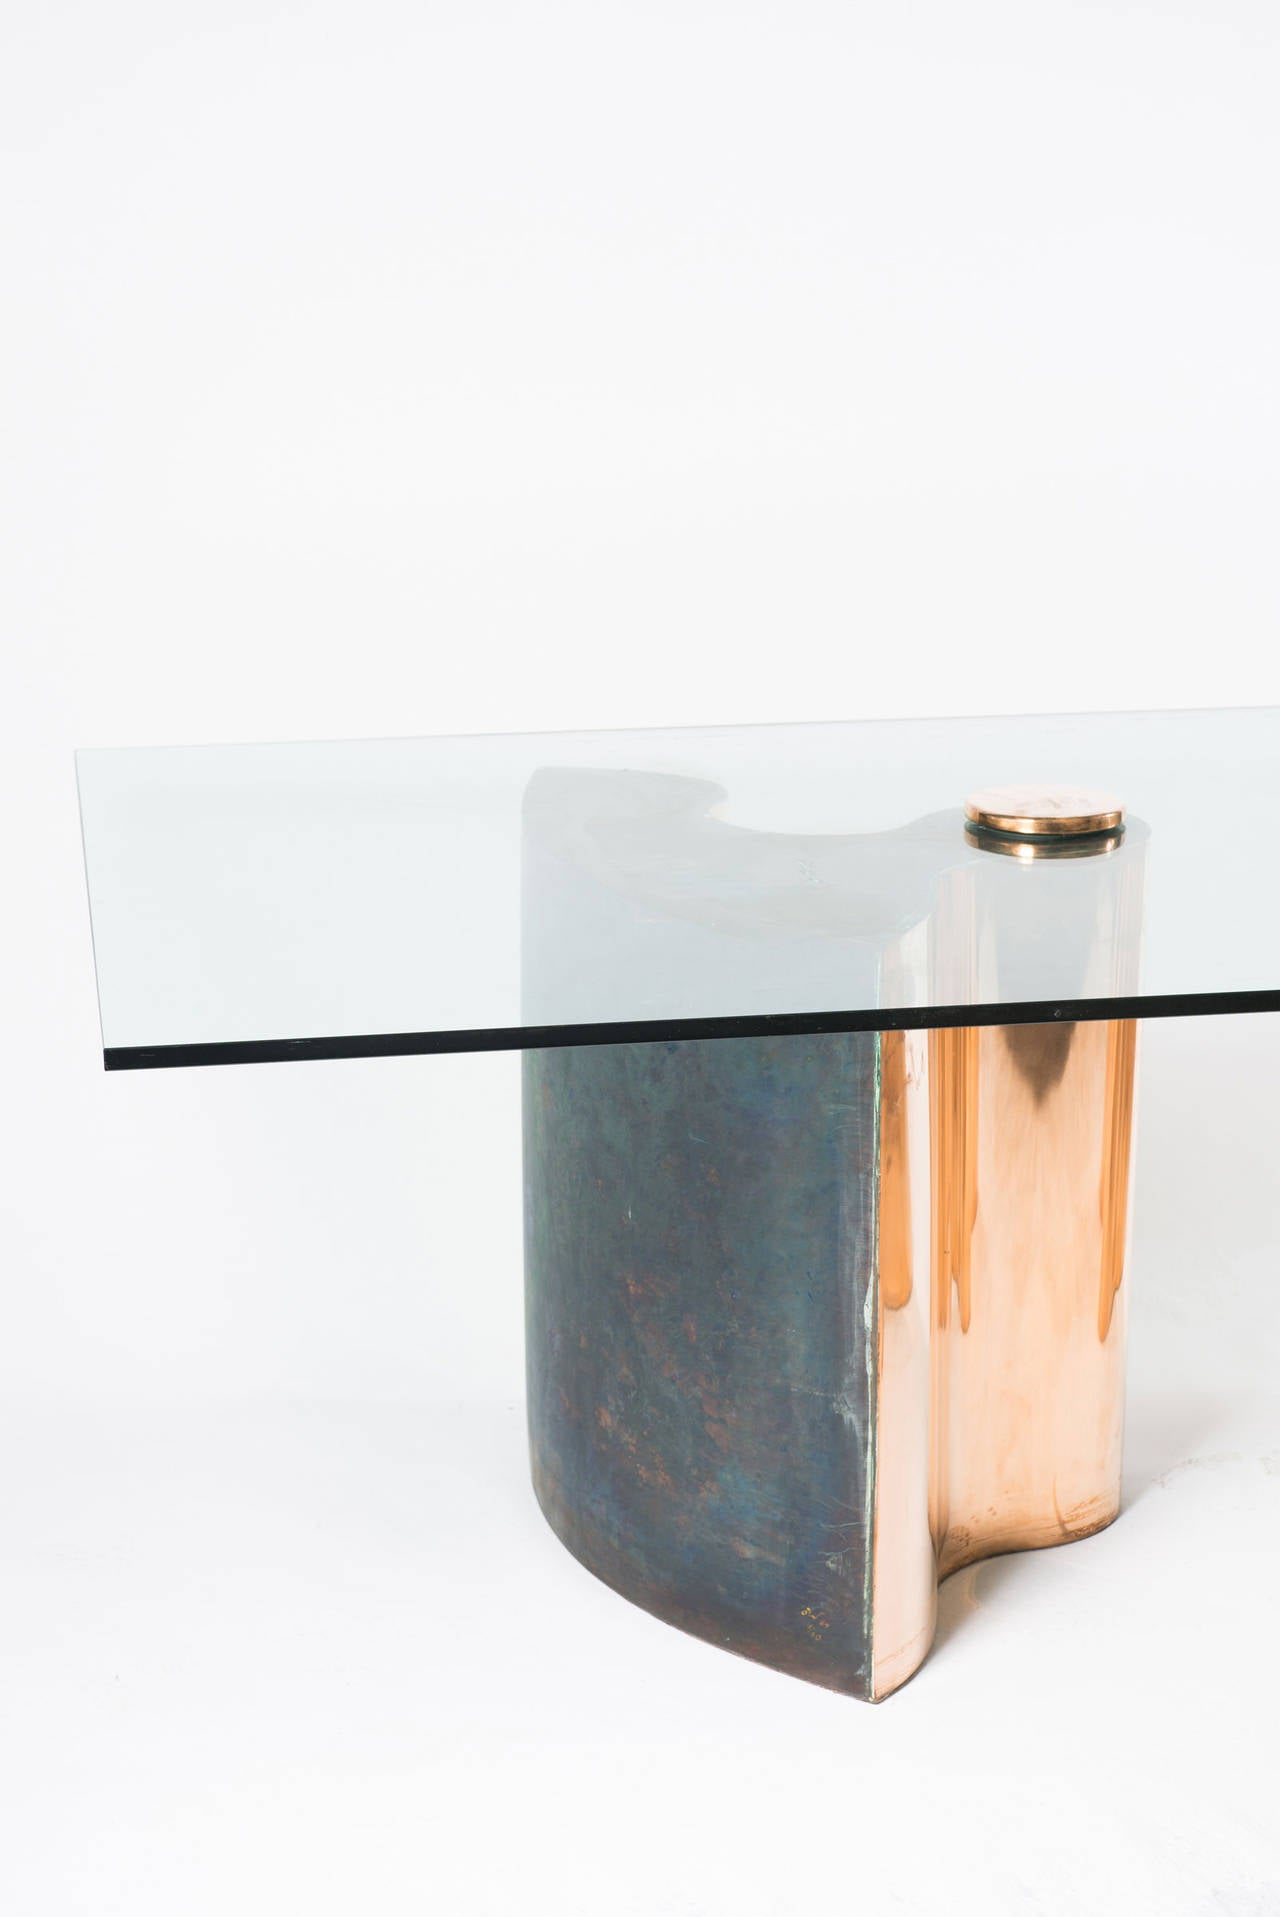 Unique Table, Brass Copper-Plated, Colorless Glass 2